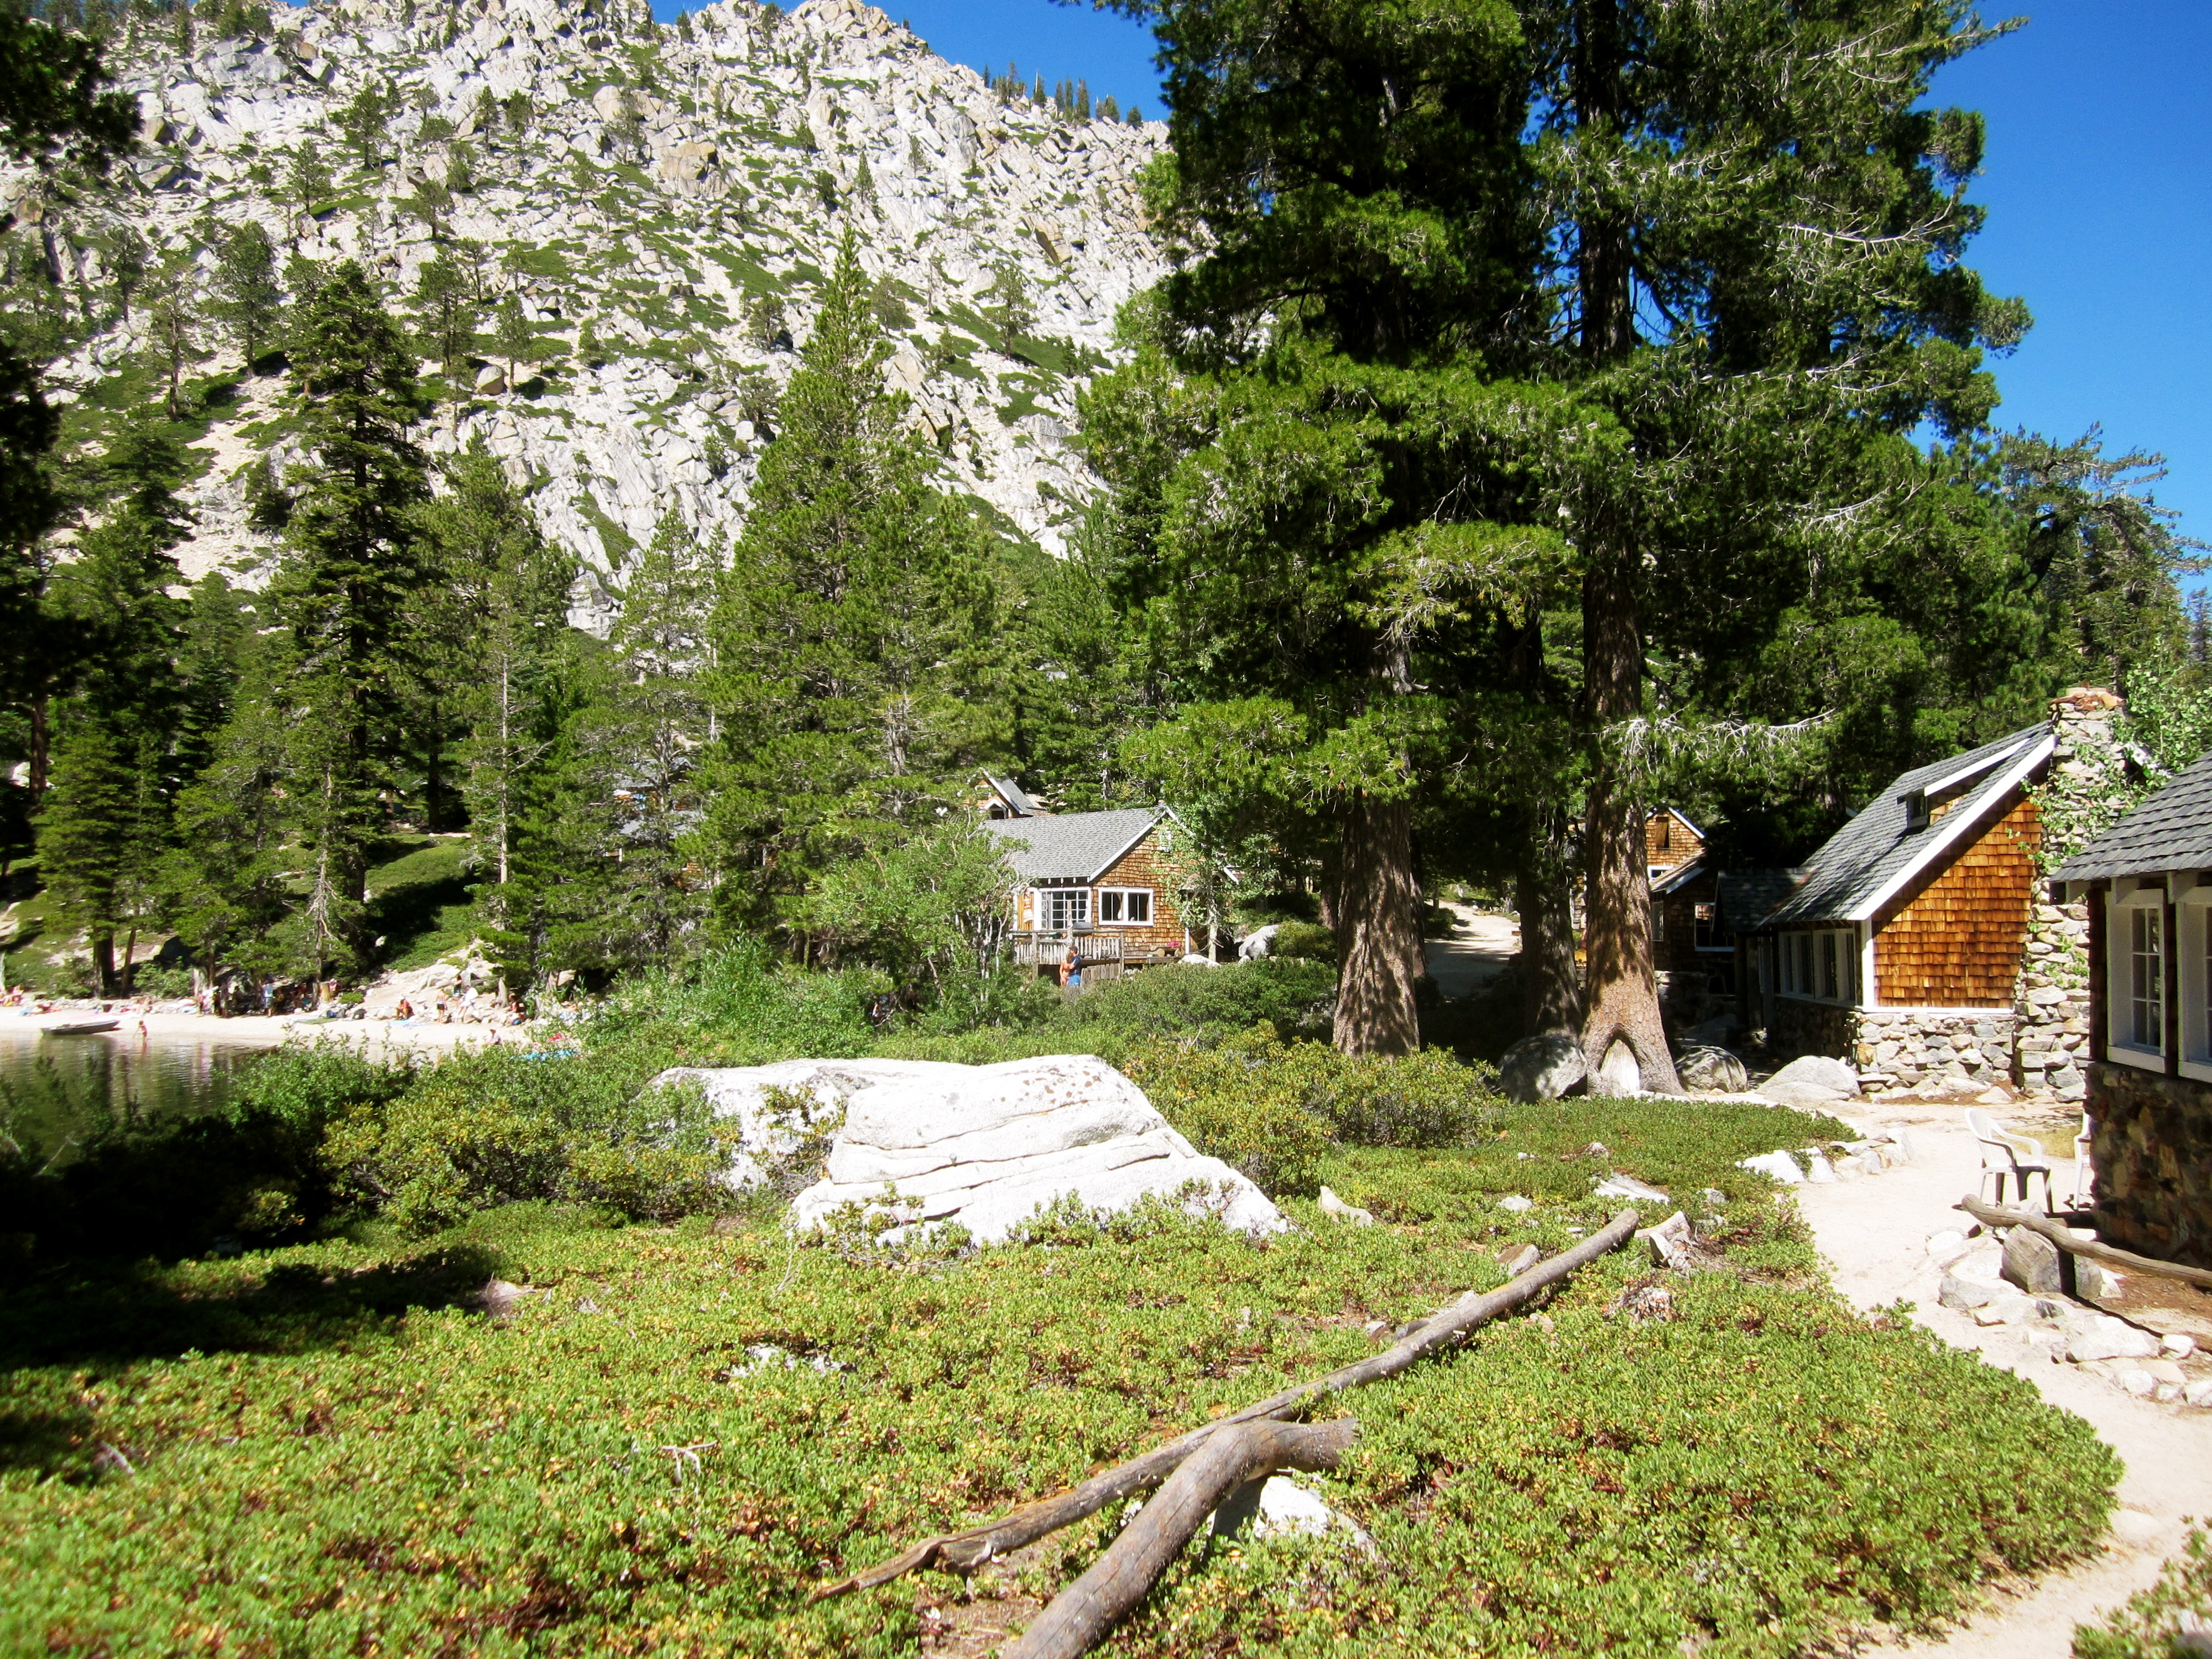 tahoe homes for north cabins in interior img studio sale of cabin lake summit style city